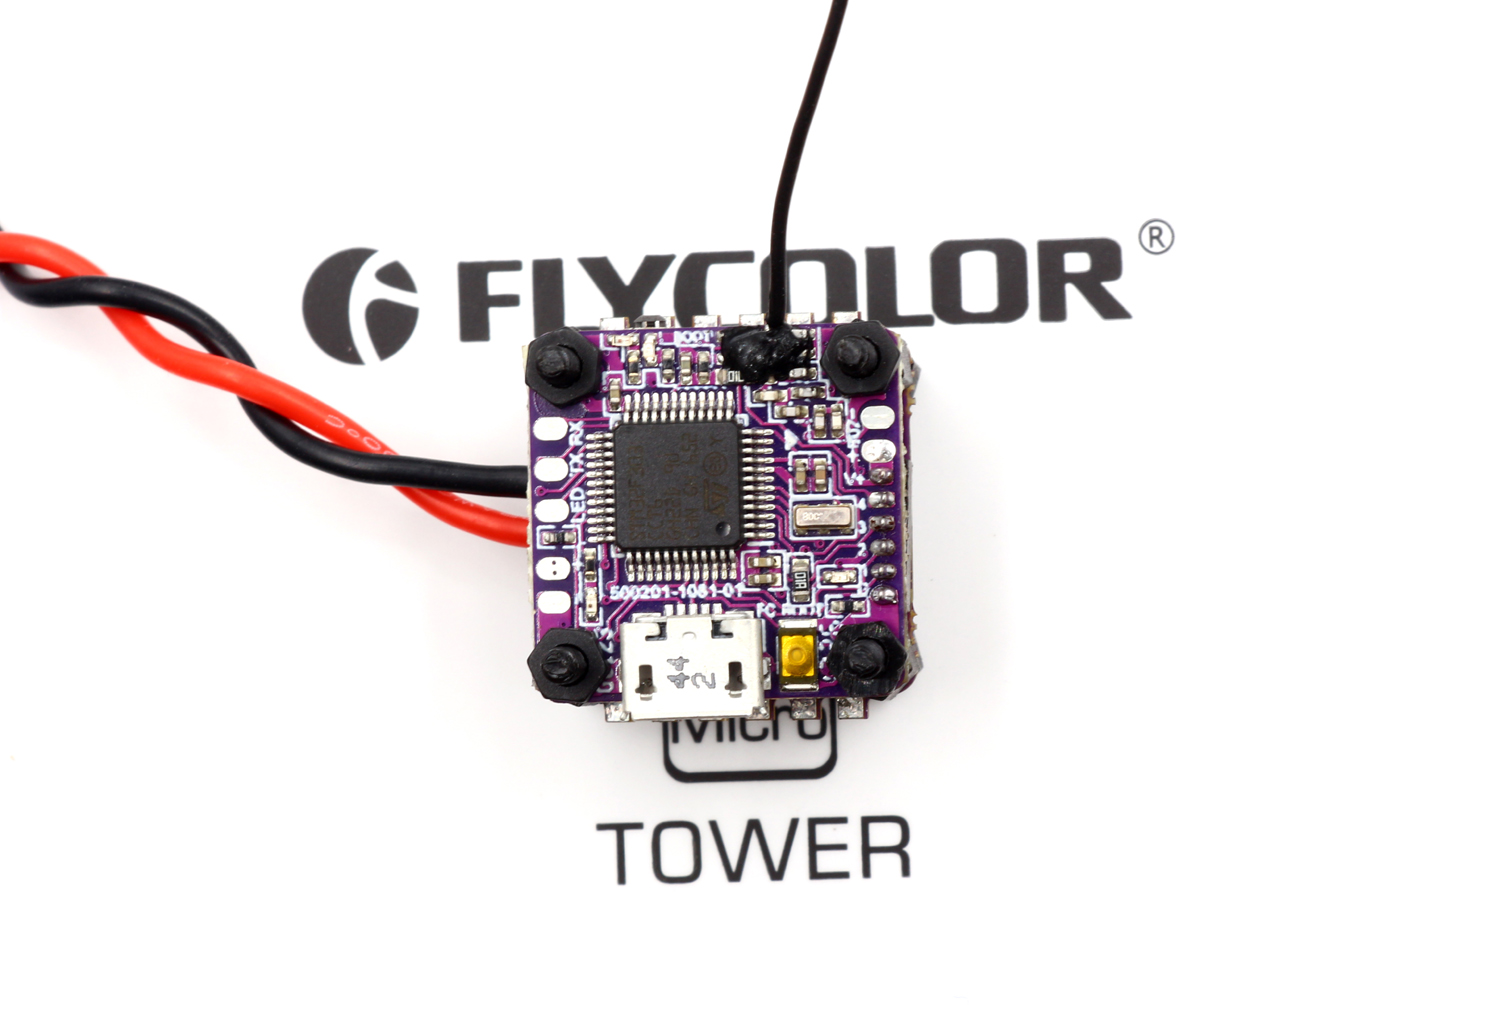 JMT Flycolor Raptor Micro Tower F3 Flight Controller + 4 IN 1 4A Brushless ESC Multi-Rotor for DIY RC Racing Drone Spare Parts